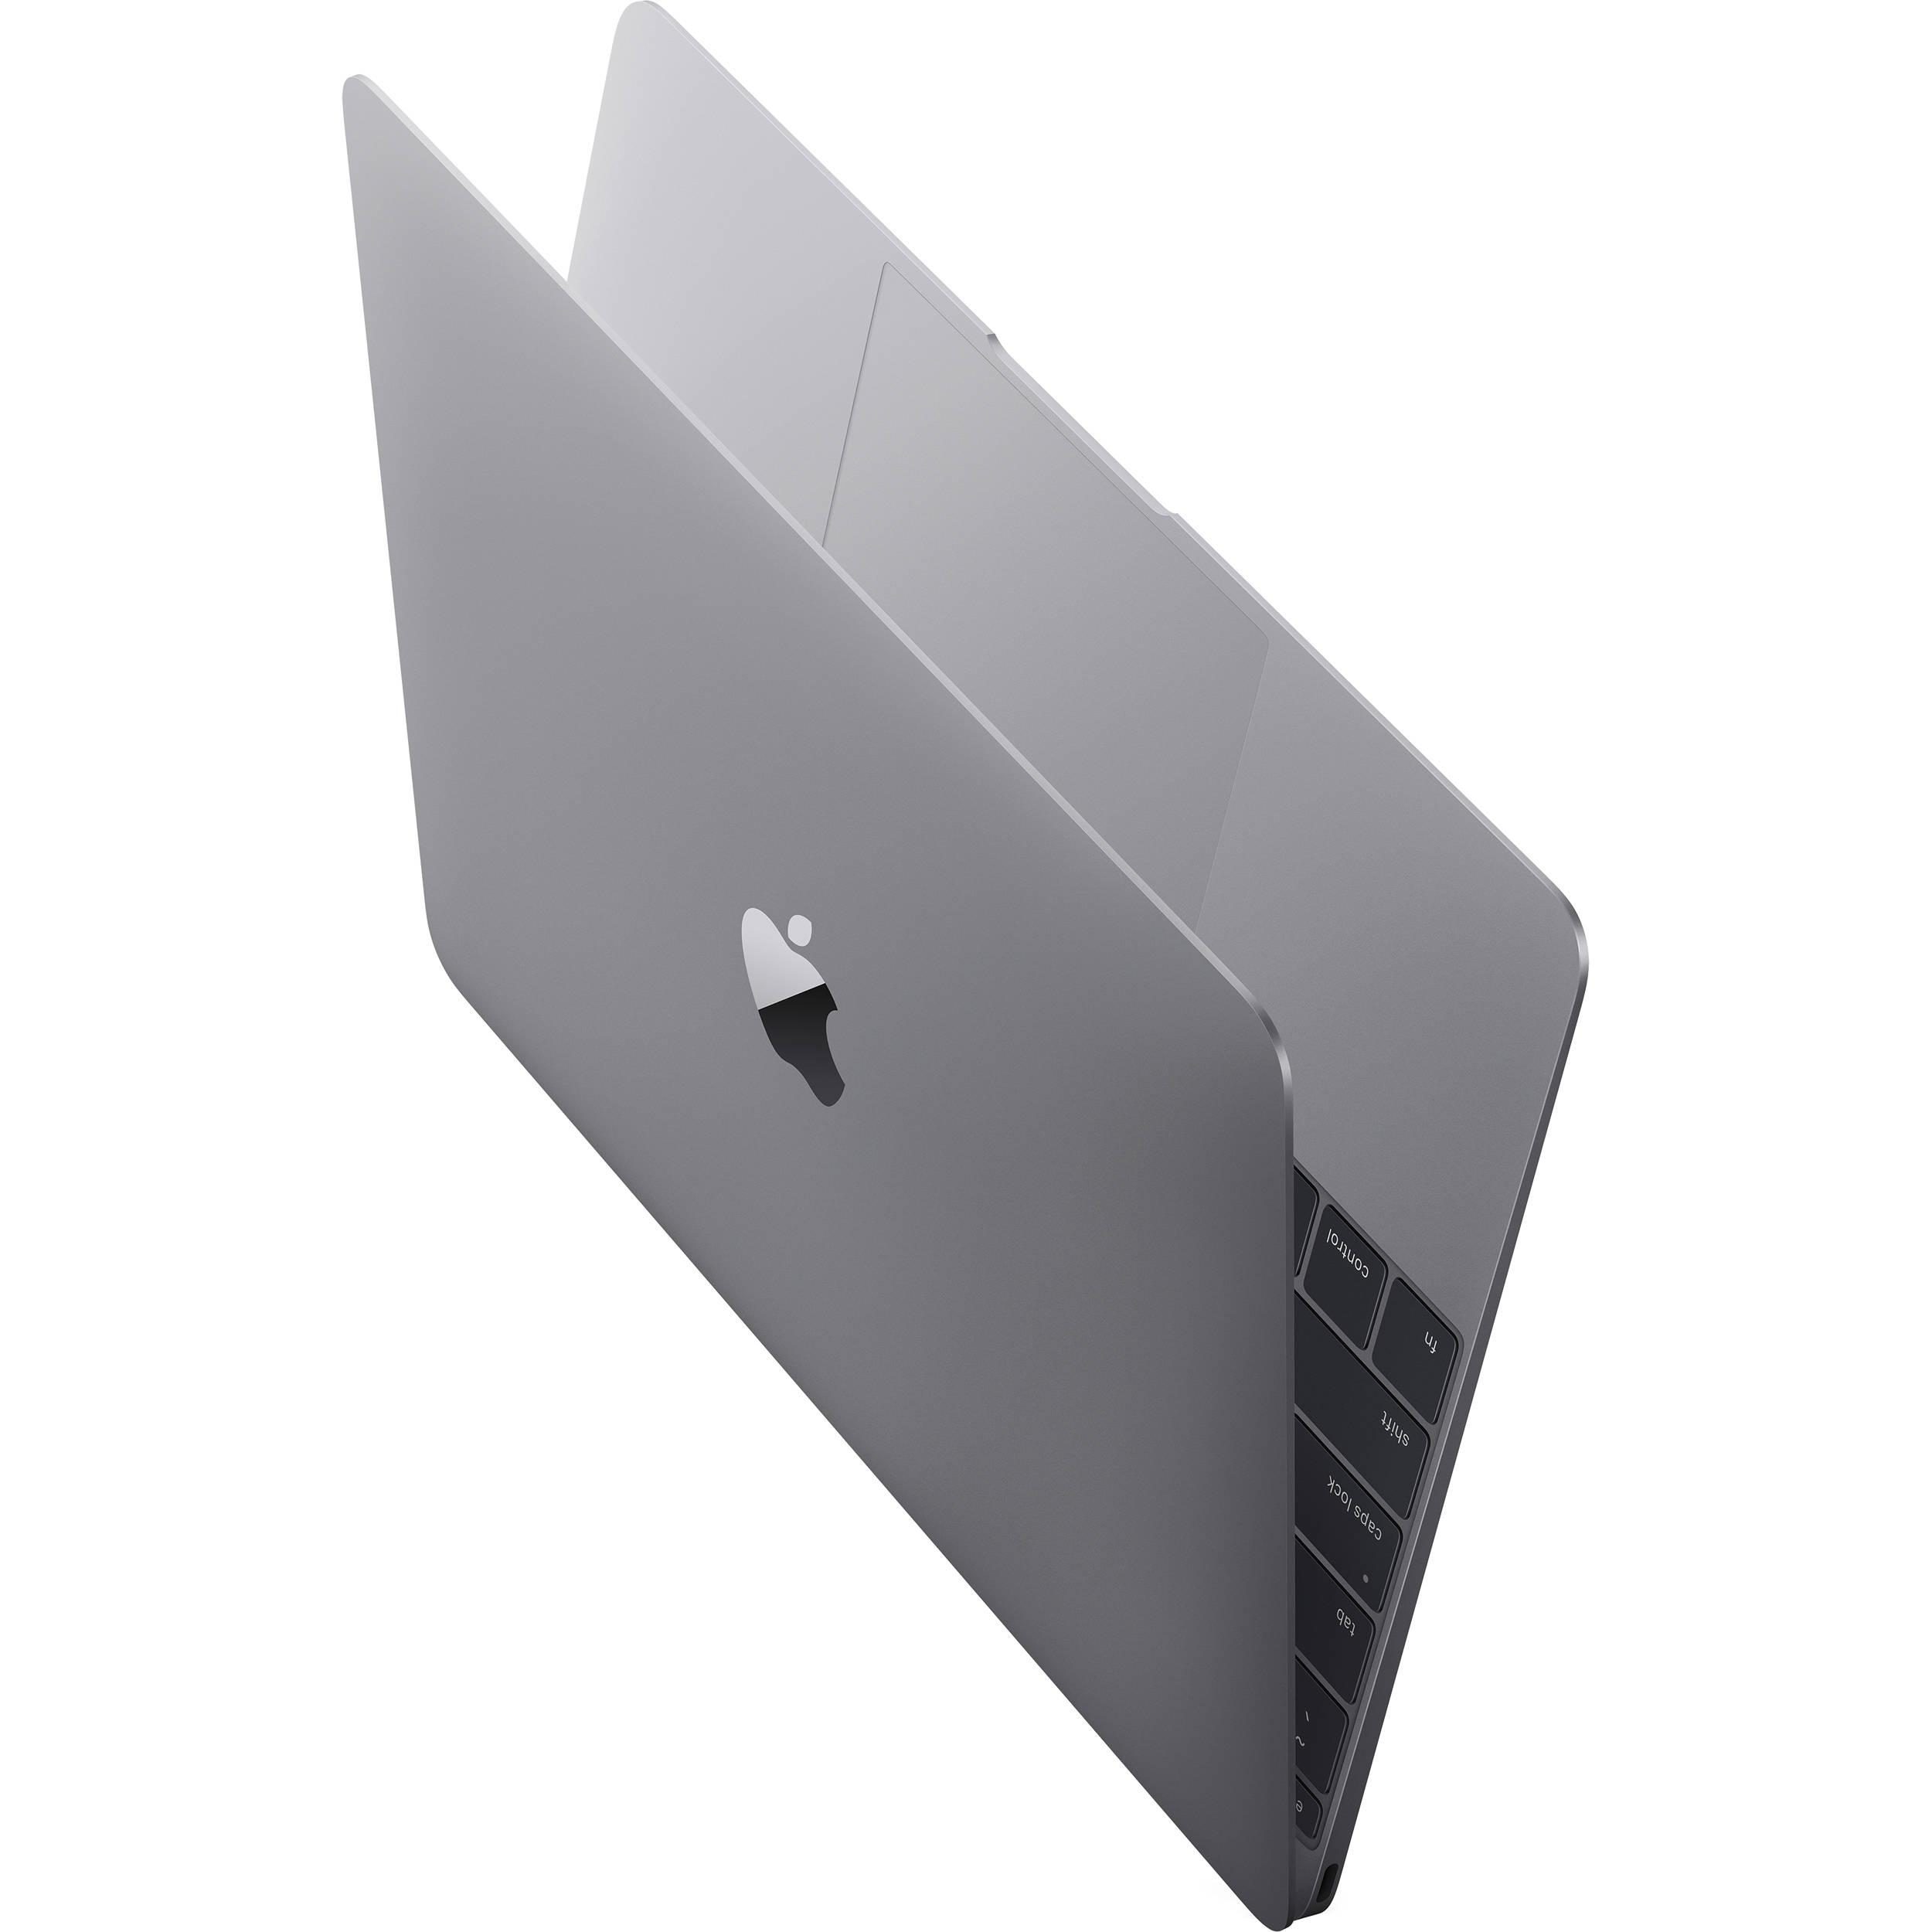 Apple Notebook 2015 Apple 12 Macbook Early 2015